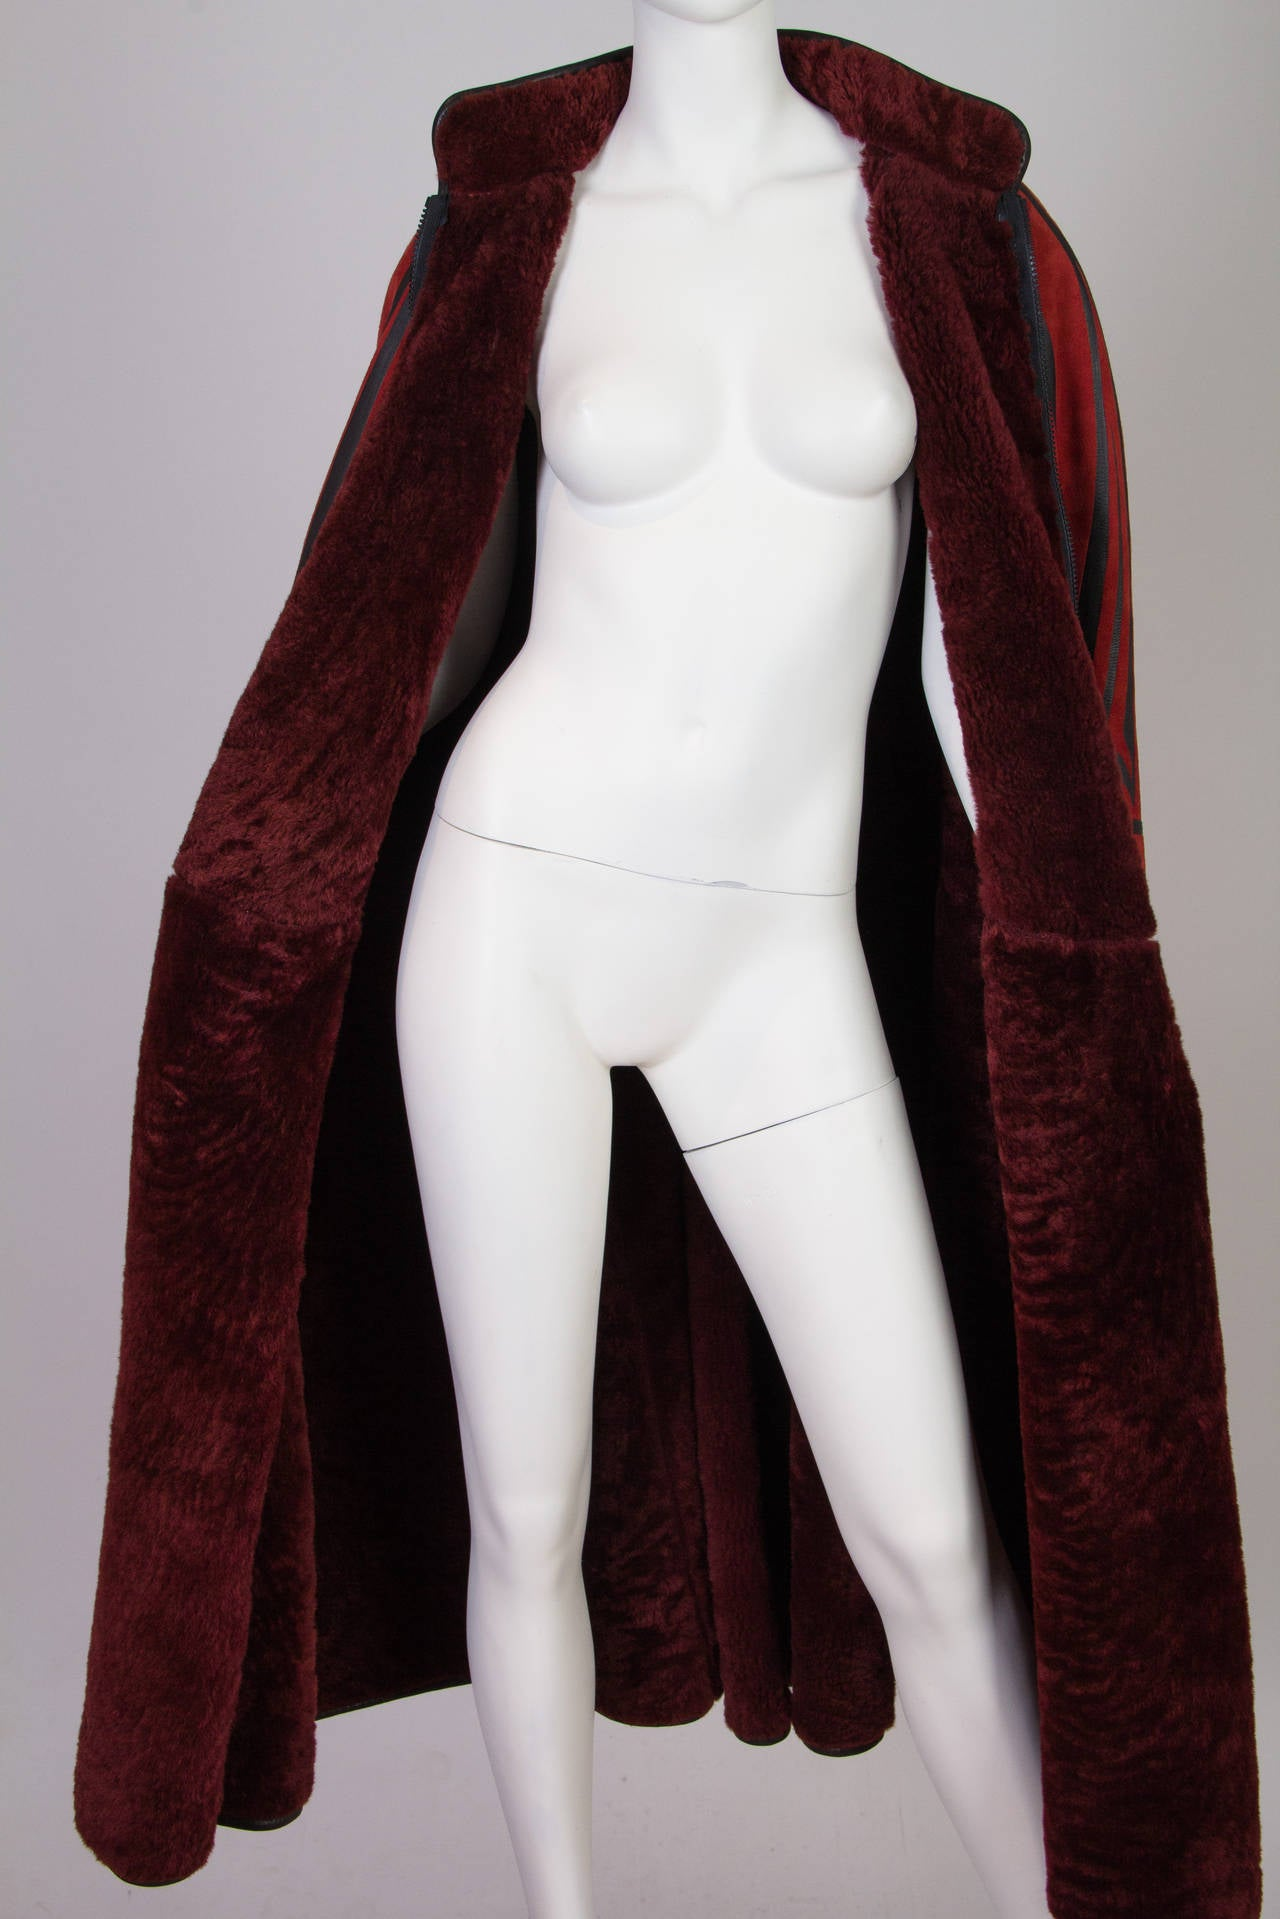 Inuit Native American Inspired Shearling Cape For Sale 3